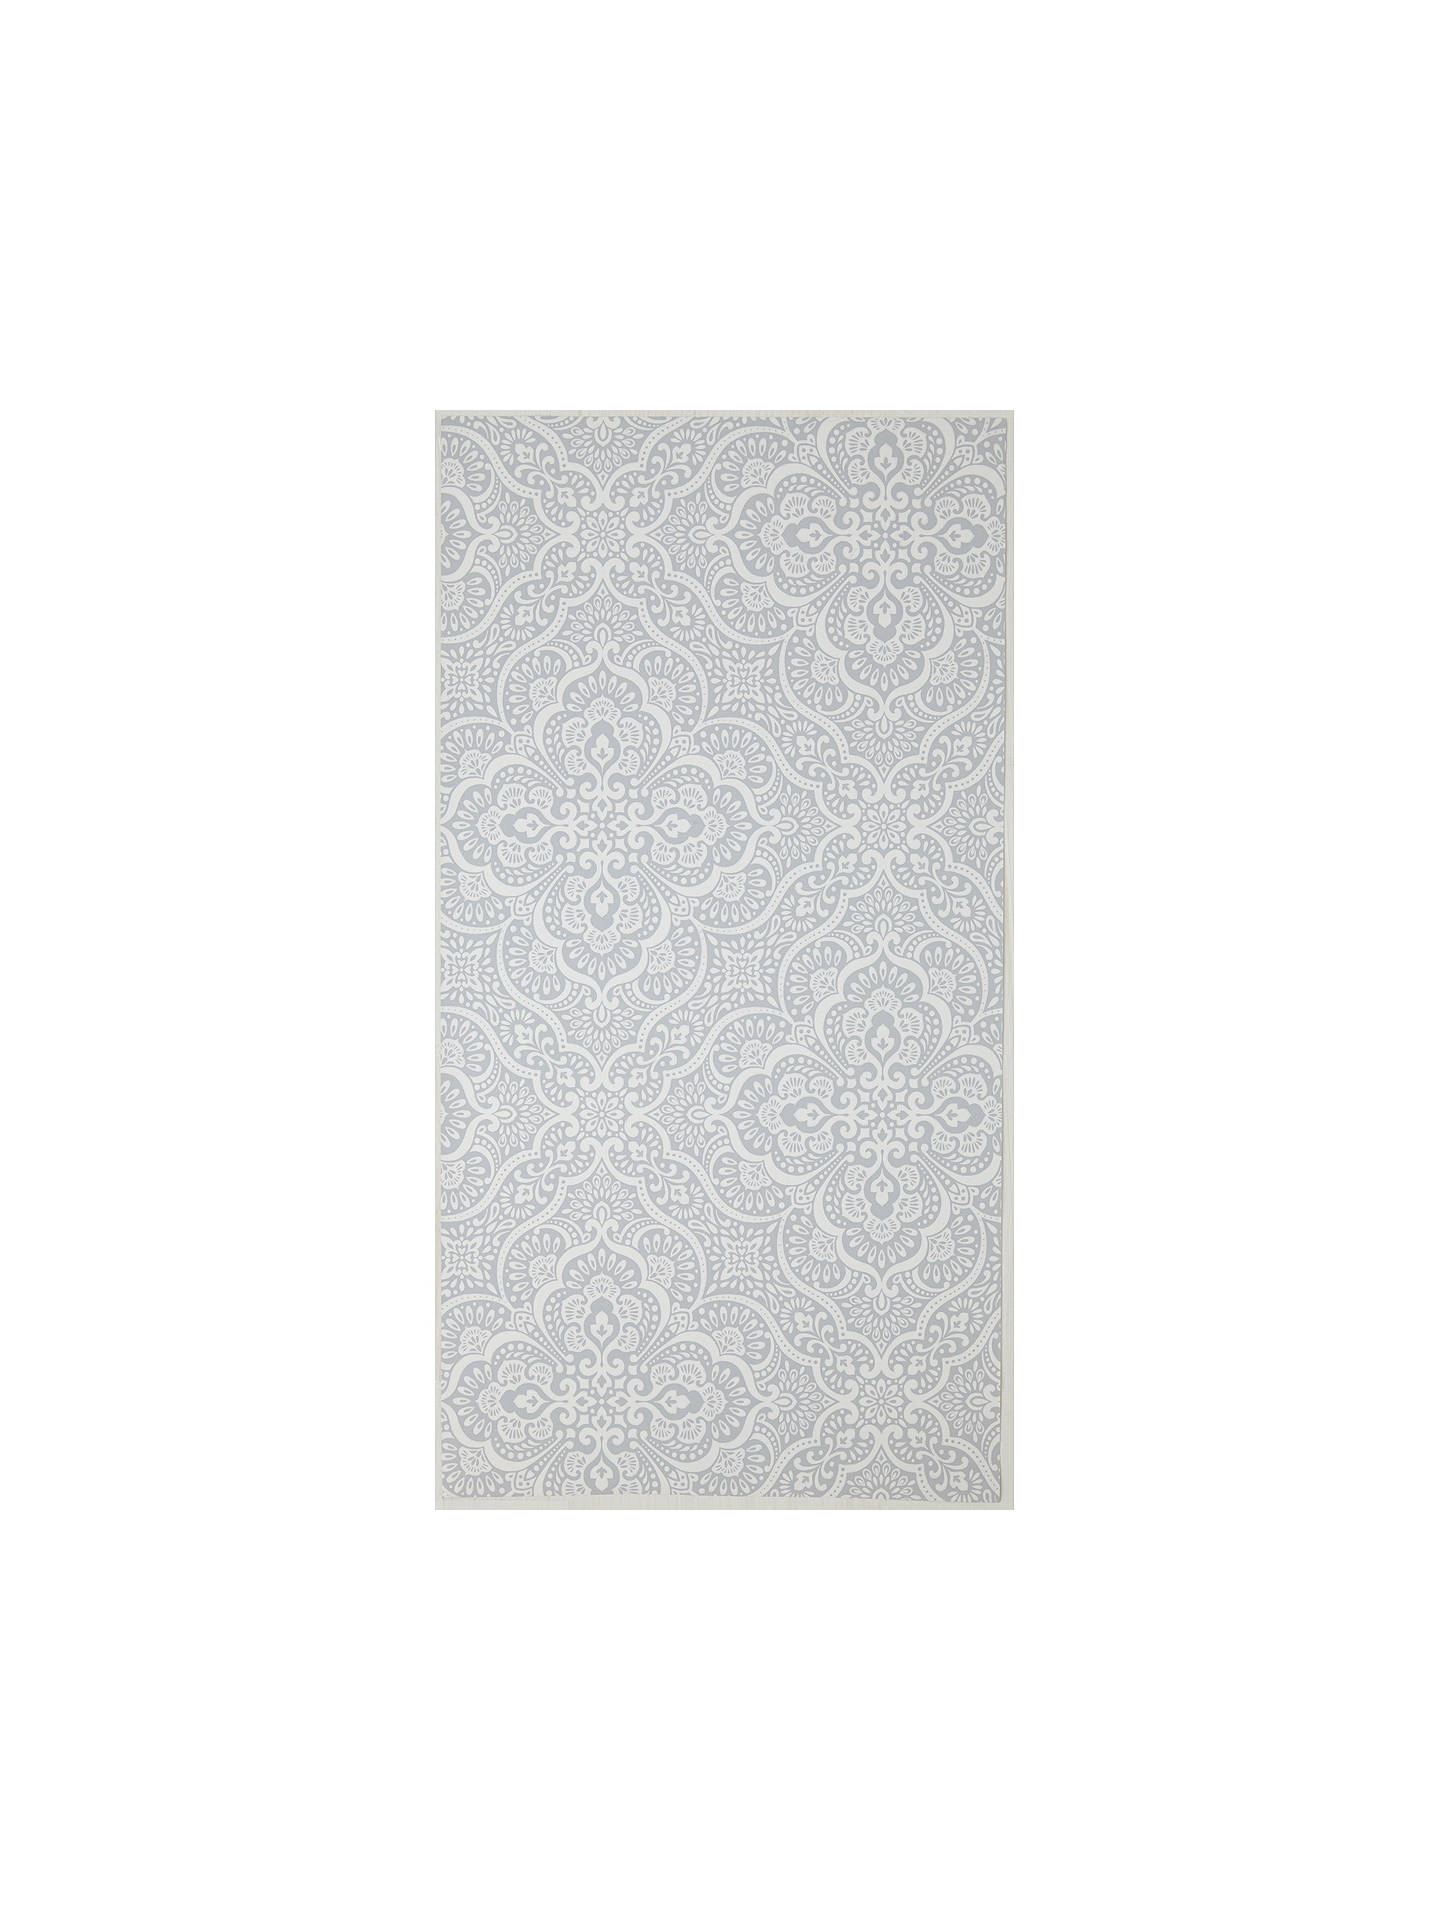 BuyPrestigious Textiles Imara Wallpaper, Porcelain, 1618/047 Online at johnlewis.com